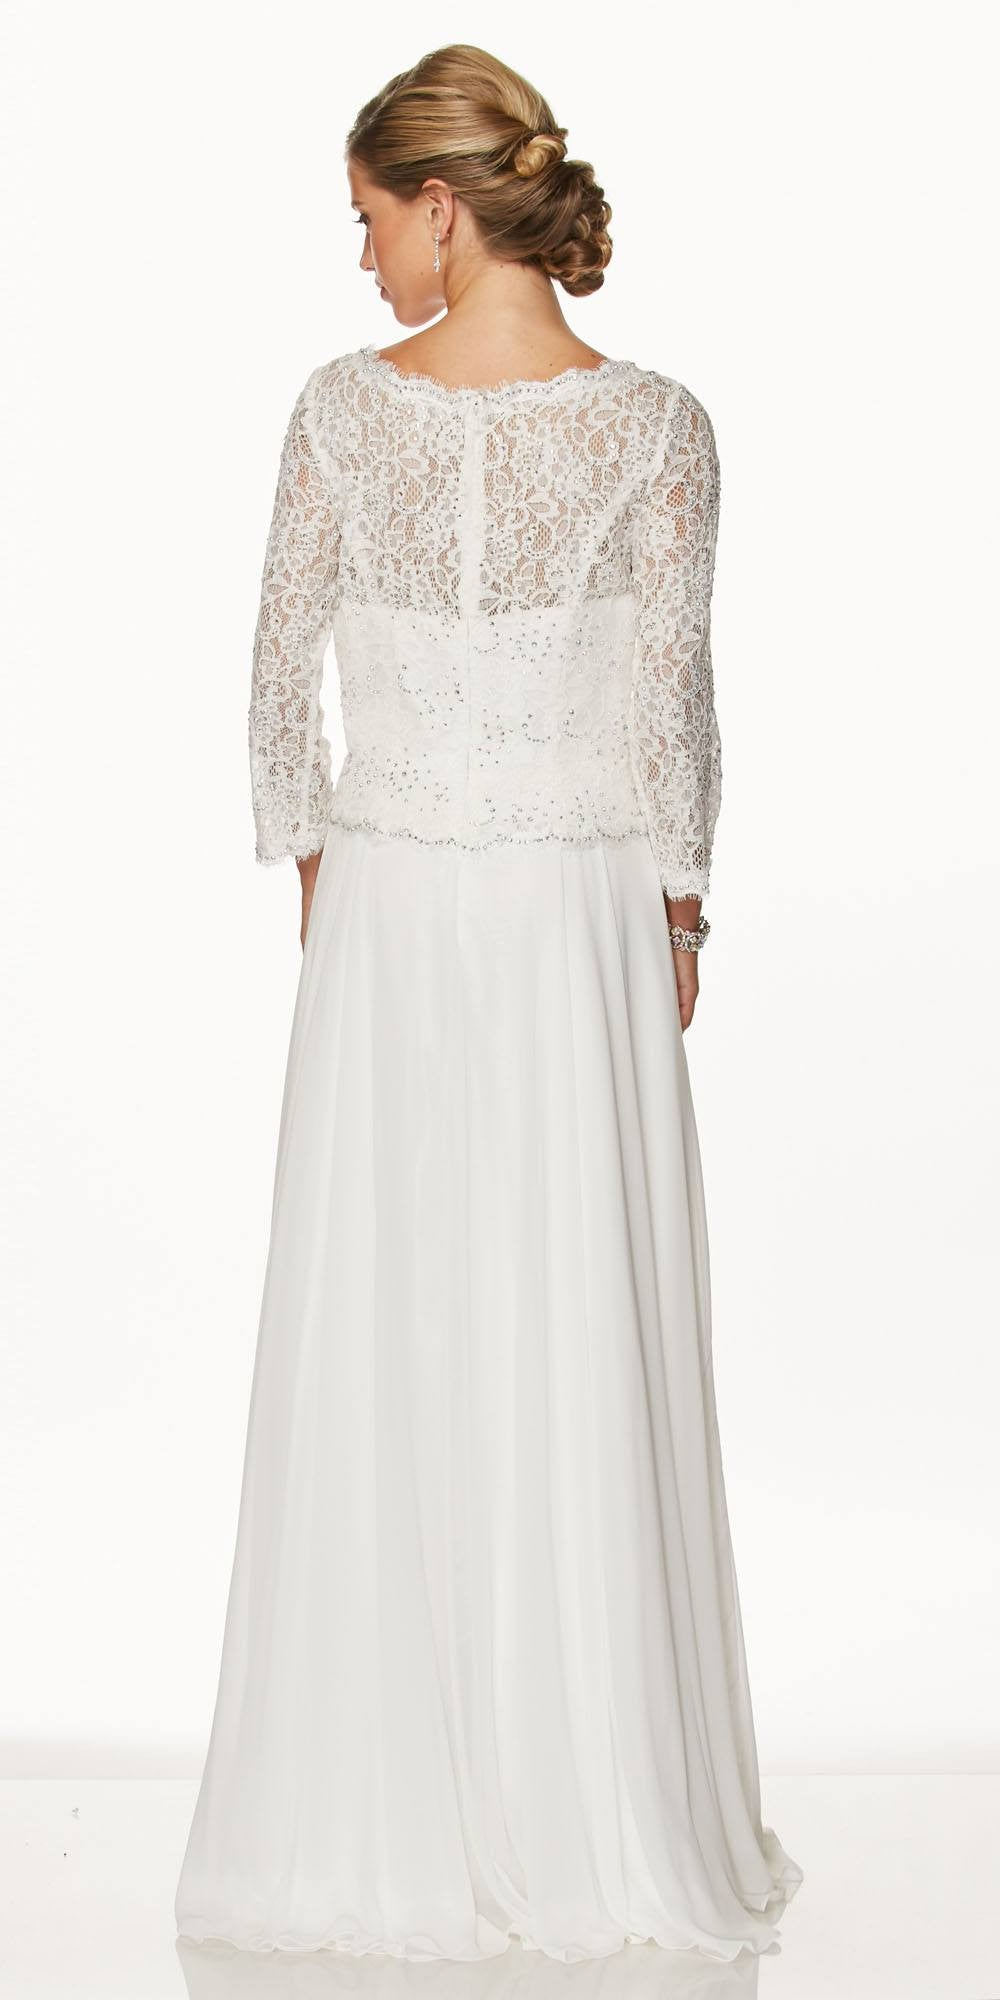 9b5d7391f81d2 ... Juliet 630 Off White Lace Top Chiffon Skirt Mother of Bride or Groom  Dress ...